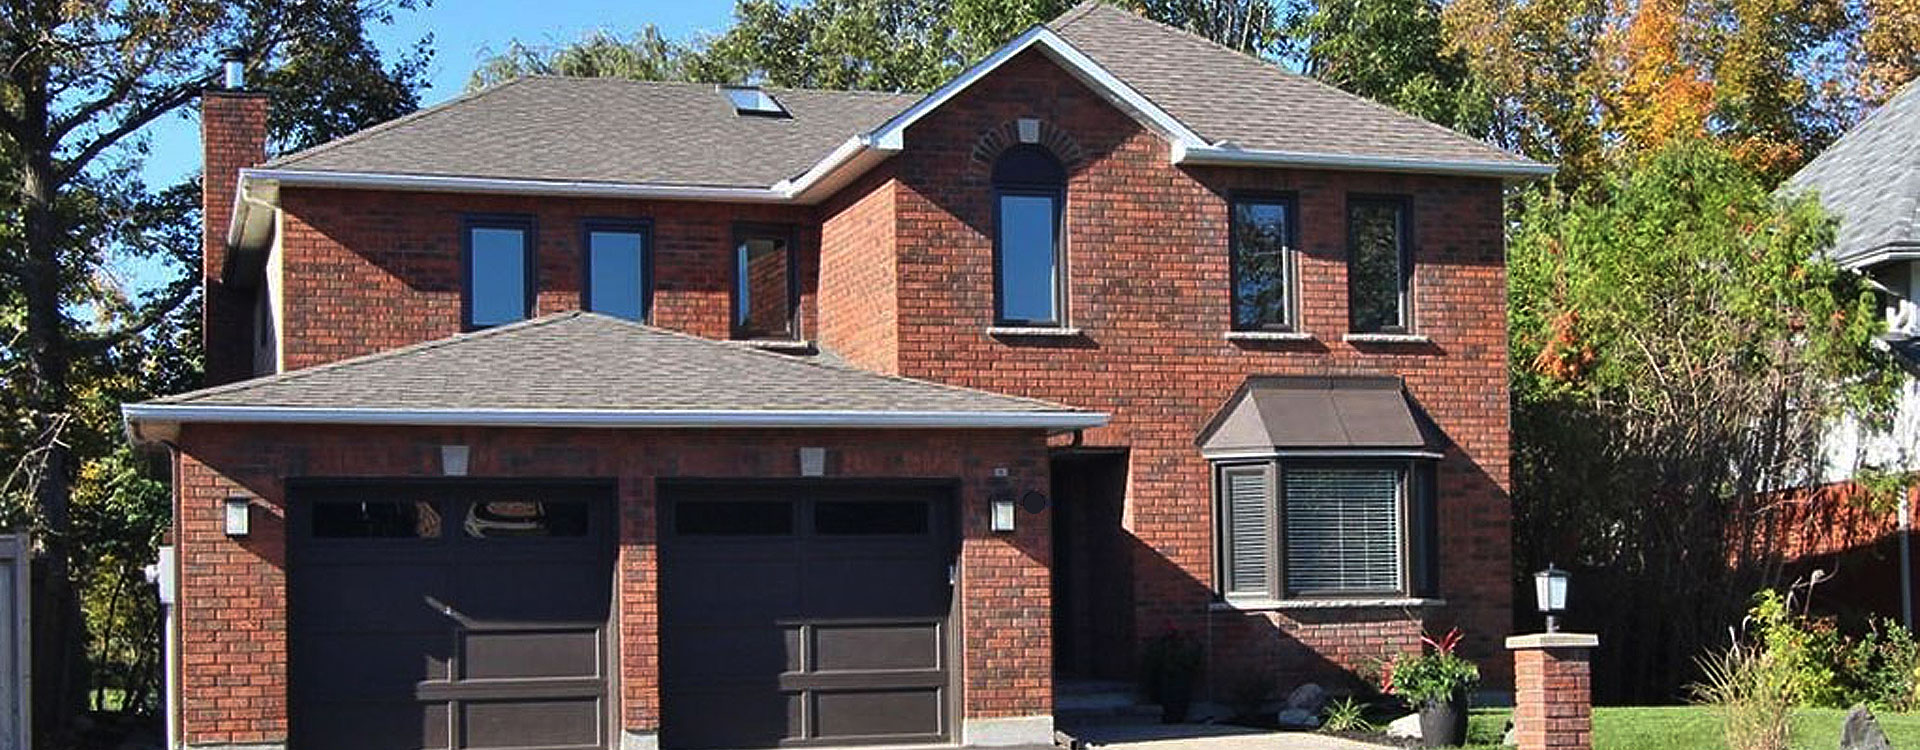 Ottawa Homes For sale